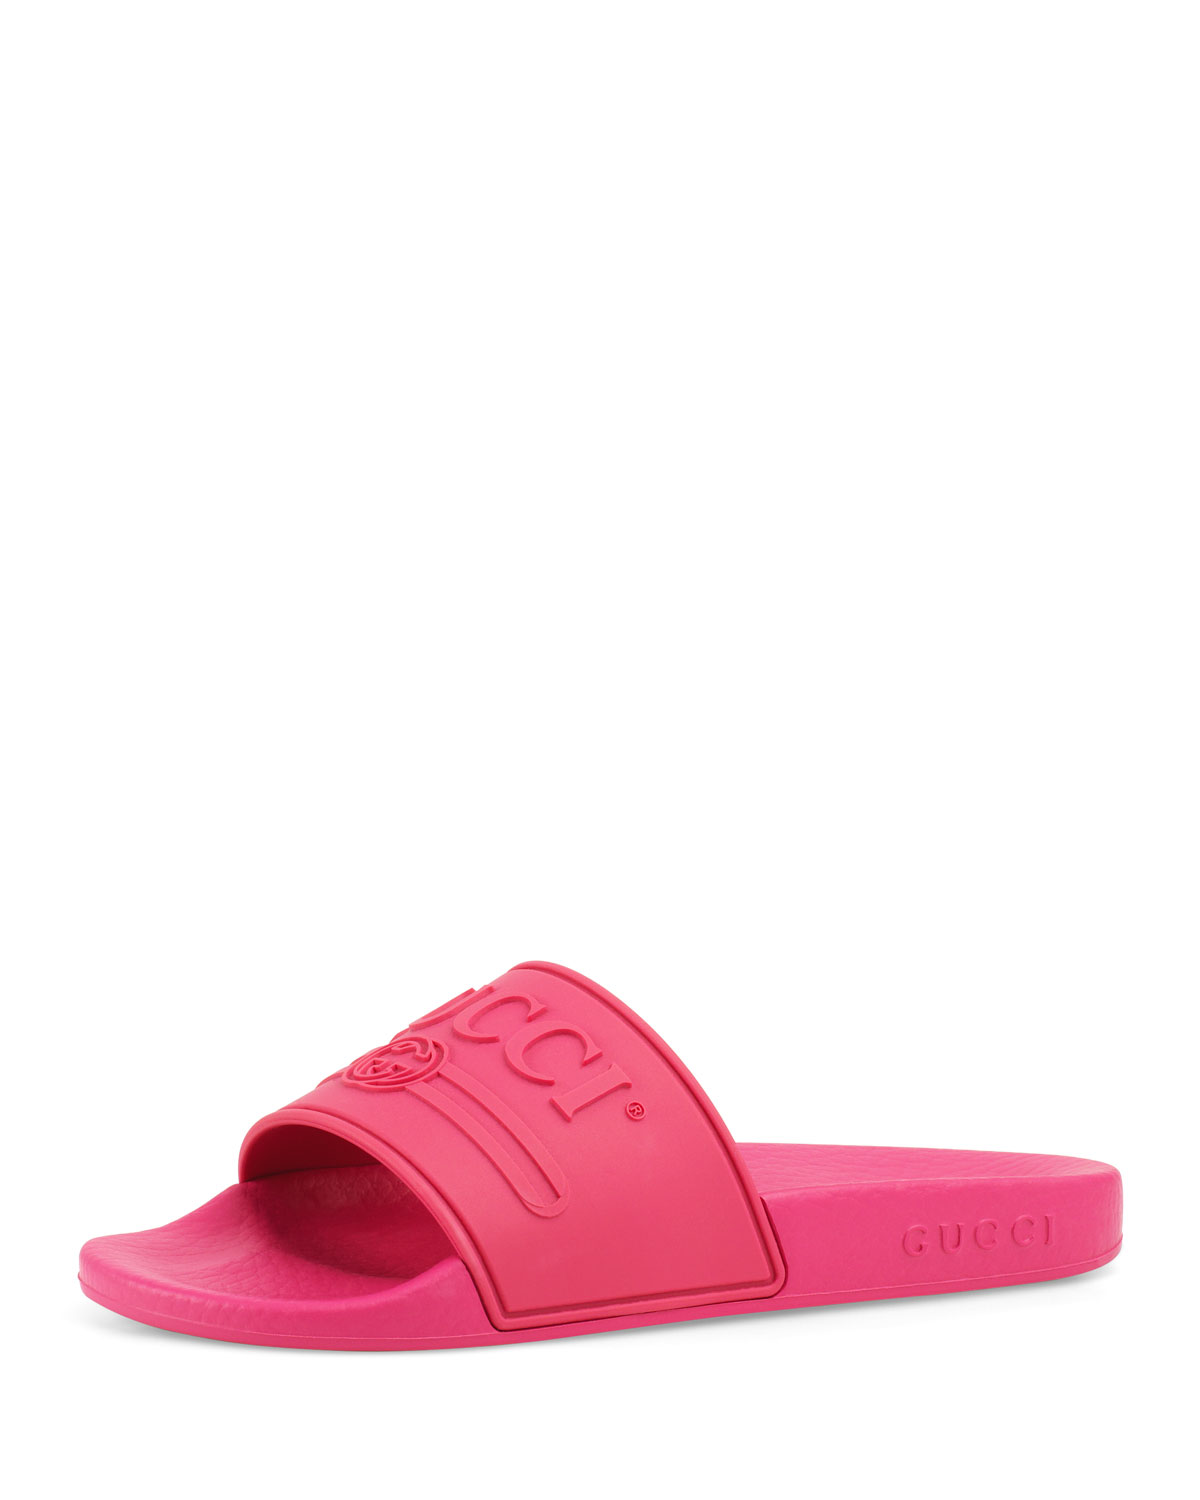 f88a16788c90 Gucci Pursuit Gucci Rubber Slide Sandals